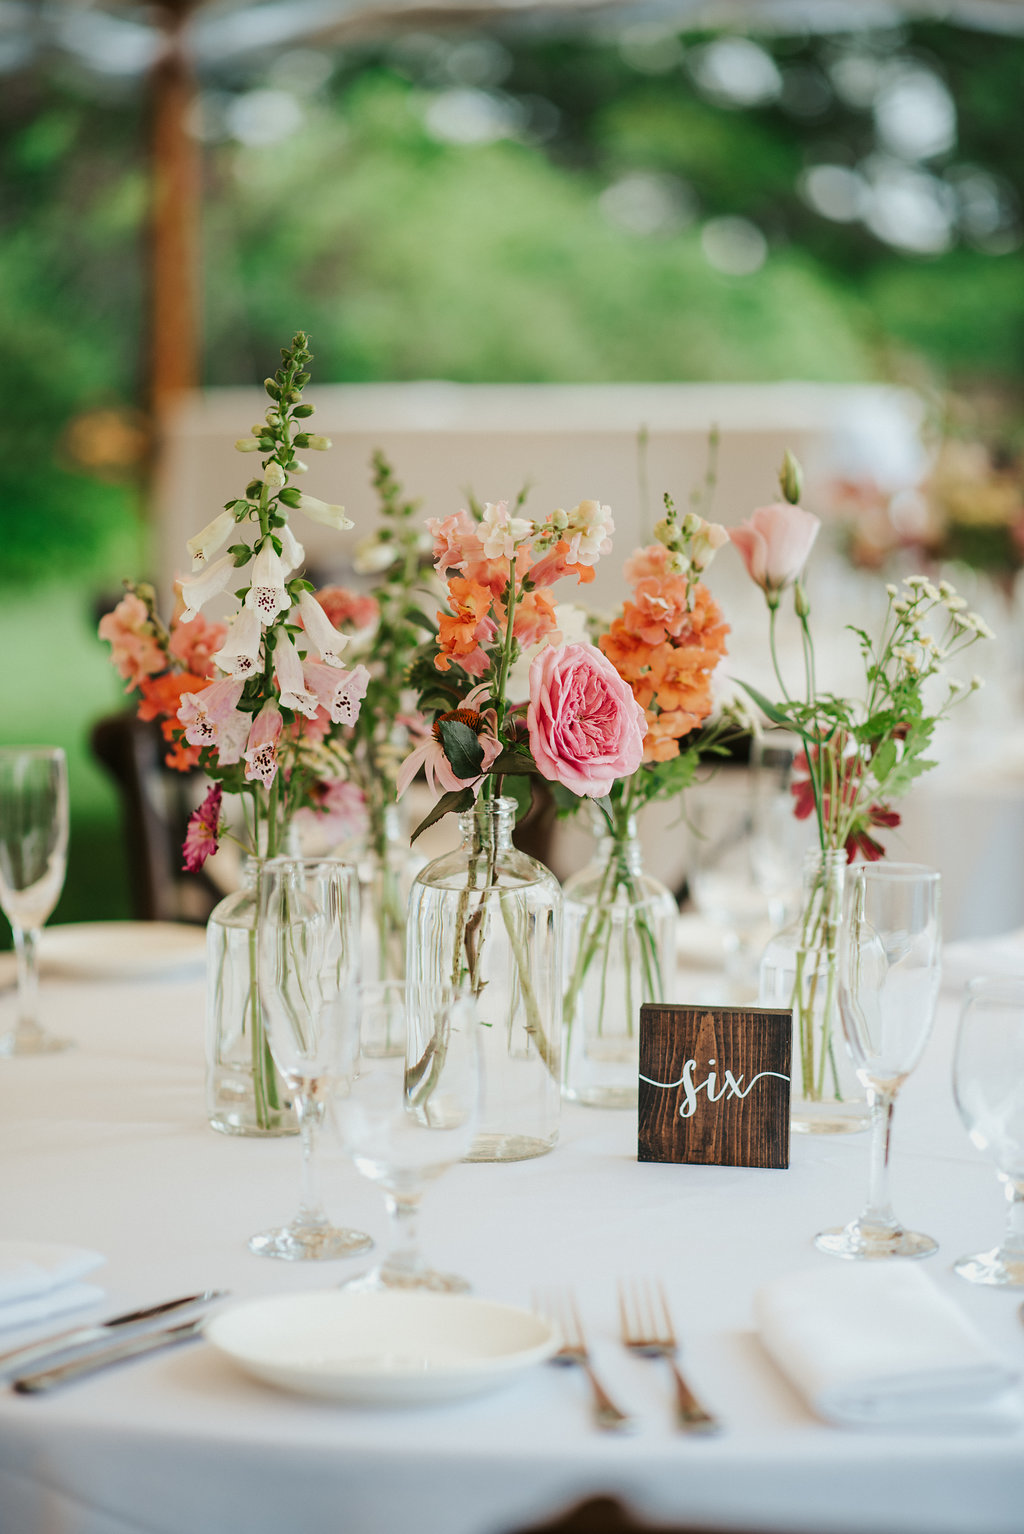 Watershed_Floral_Summer_Maine_Wedding_072818_R-4.jpg